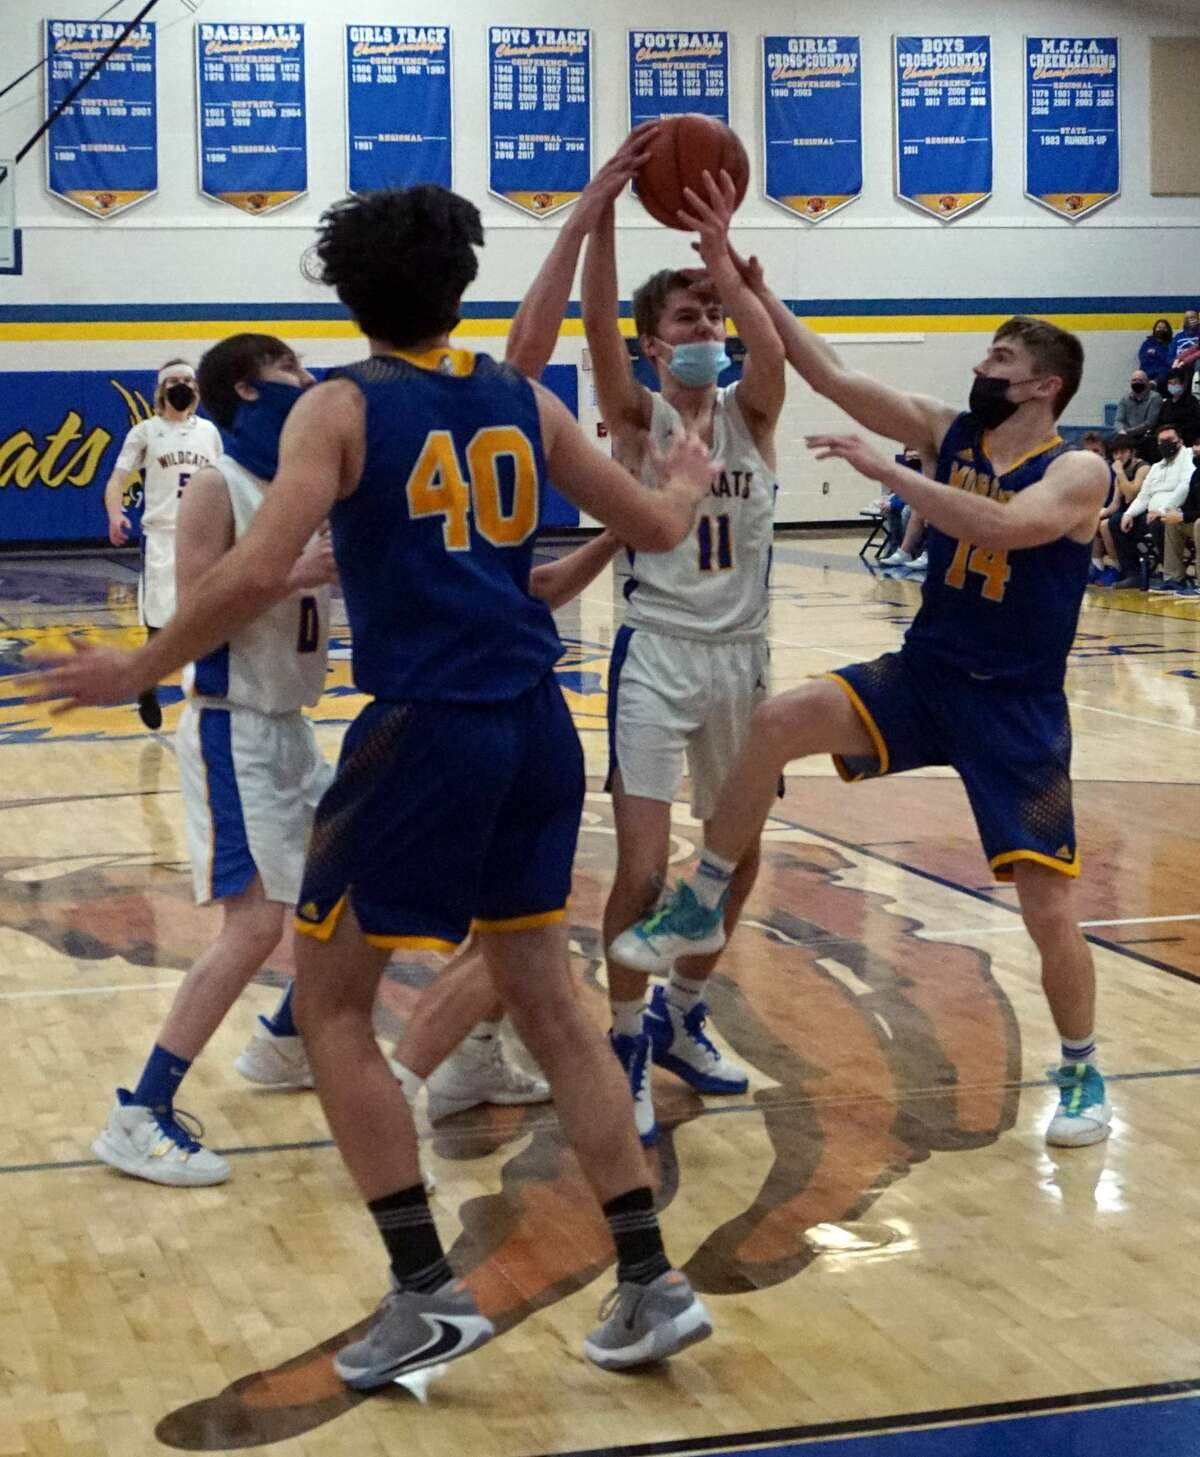 The Morley Stanwood and Evart boys' basketball teams faced each other on Monday evening, with Morley Stanwood emerging victorious 67-34.